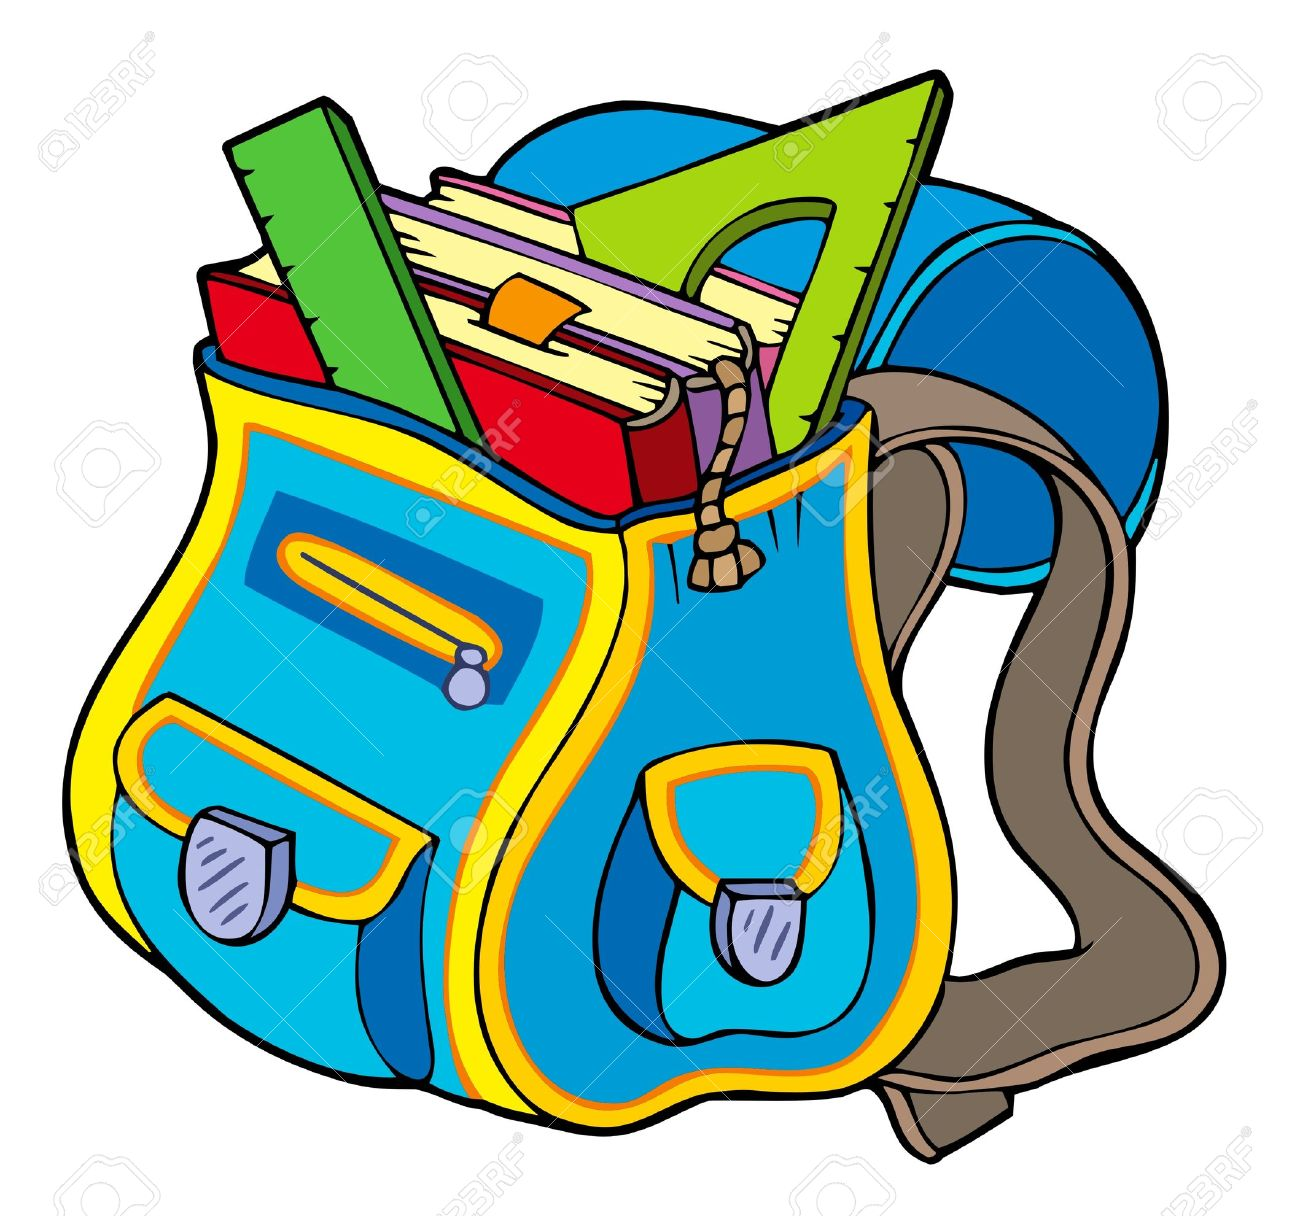 School Bag With Books Royalty Free Cliparts, Vectors, And Stock.